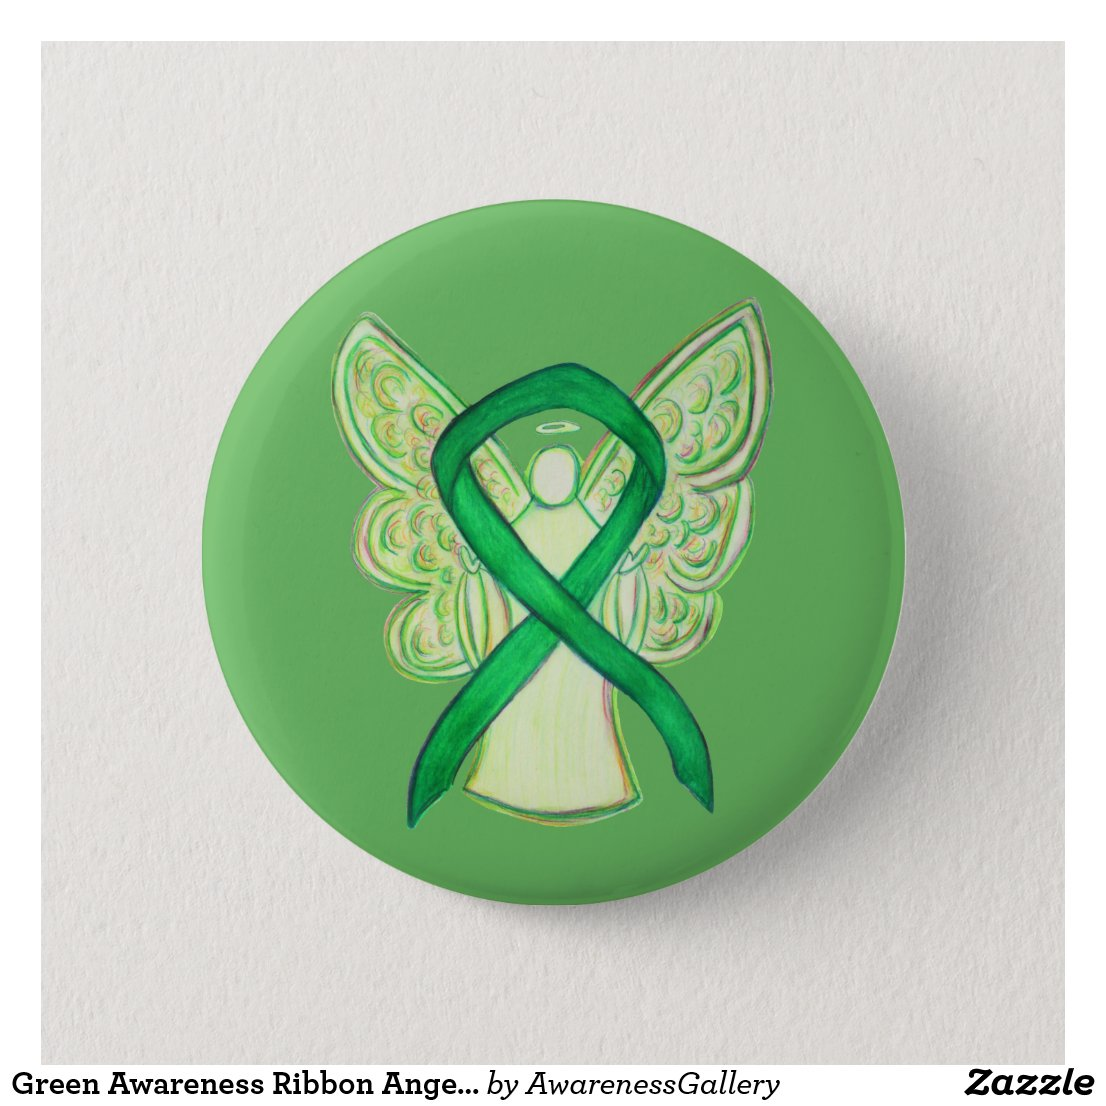 Green Awareness Ribbon Angel Art Button